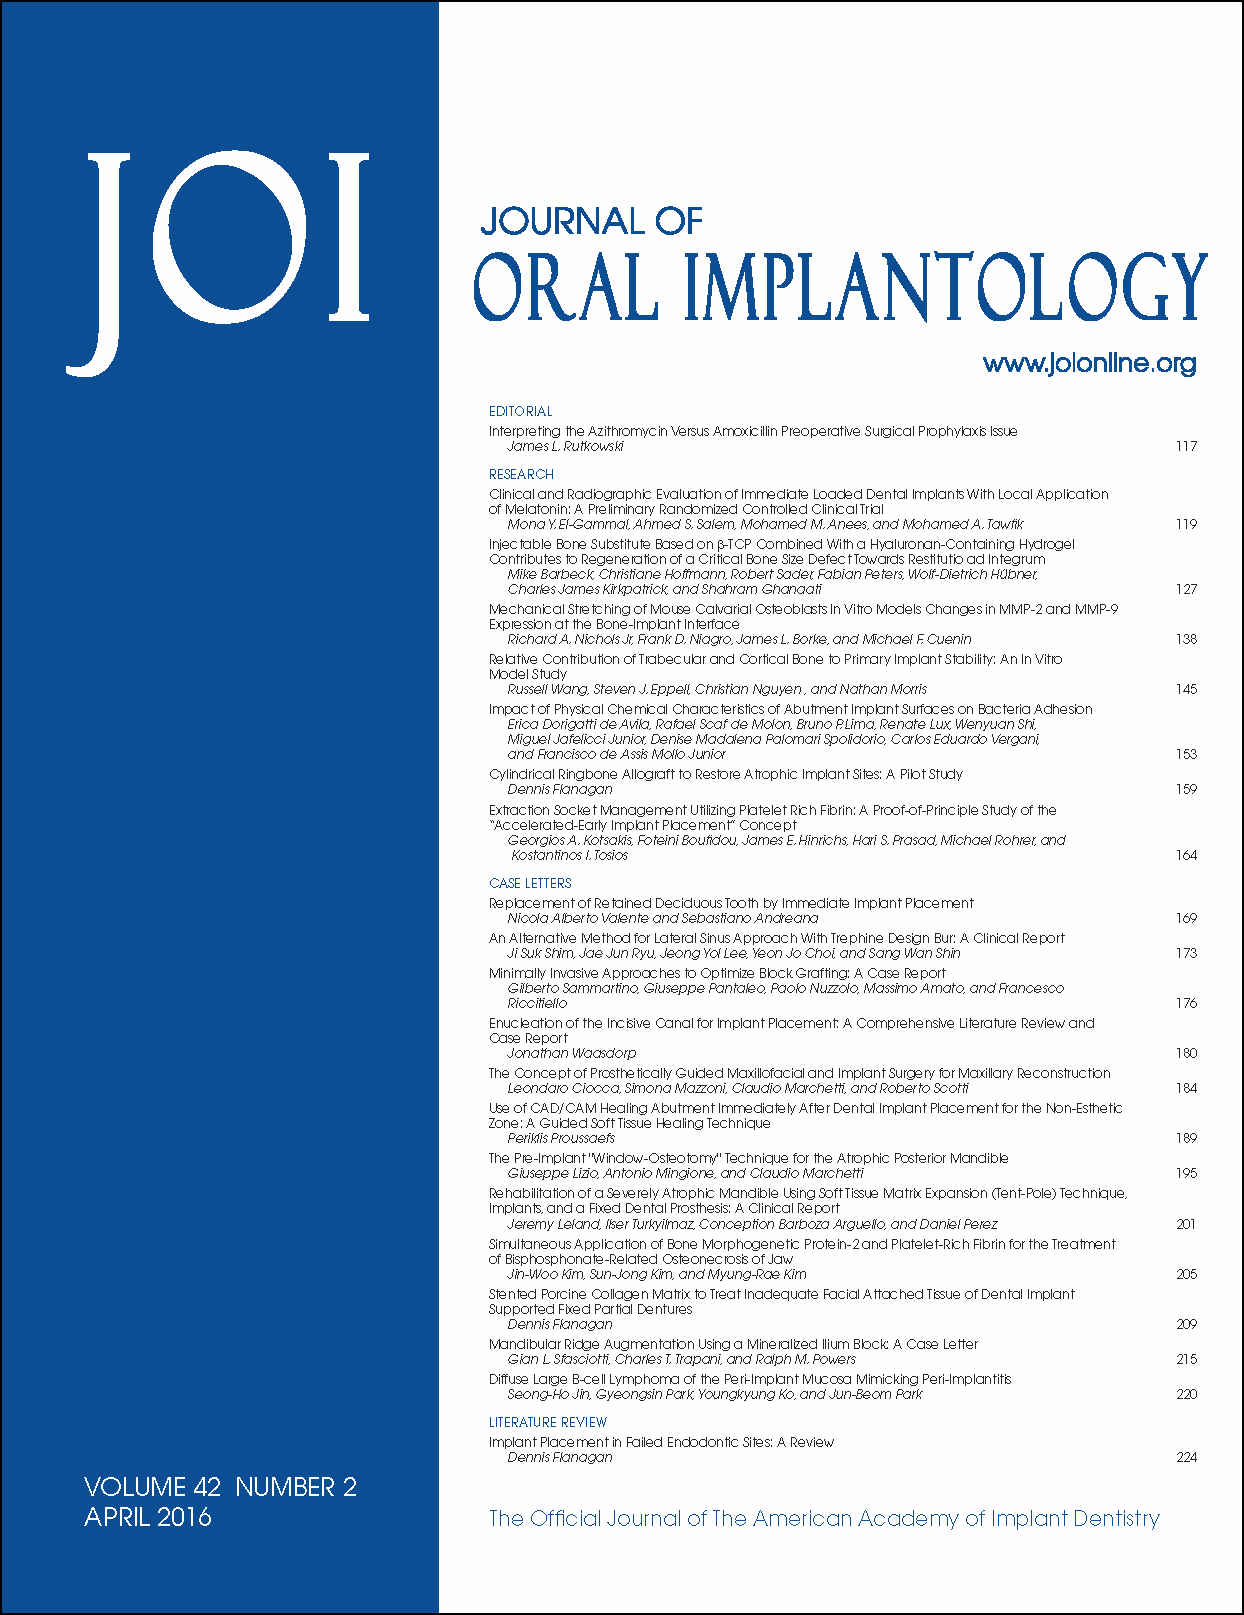 Can oral implantology implant dentistry